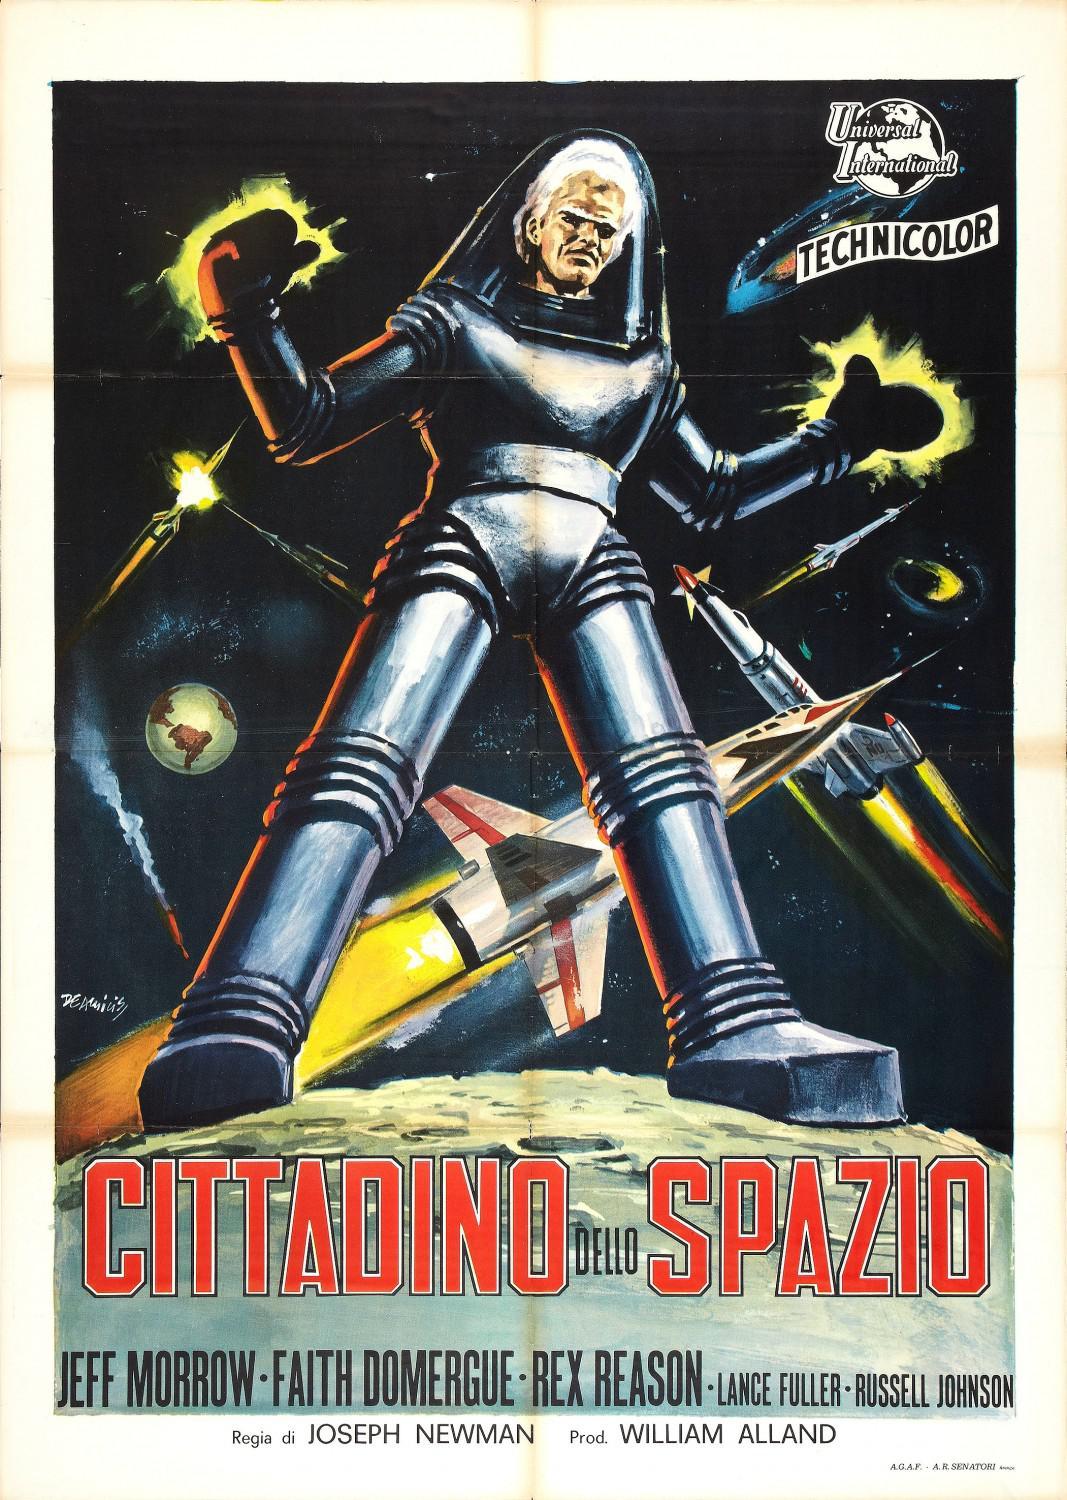 This Island Earth - Cittadino dello Spazio - Metaluna 4 - Two mortals trapped in outer space, changeling the unearthly furies of an autlaw planet gone mad - Feff Morrow - Faith Domergue - Rex Reason - alien old scifi film poster